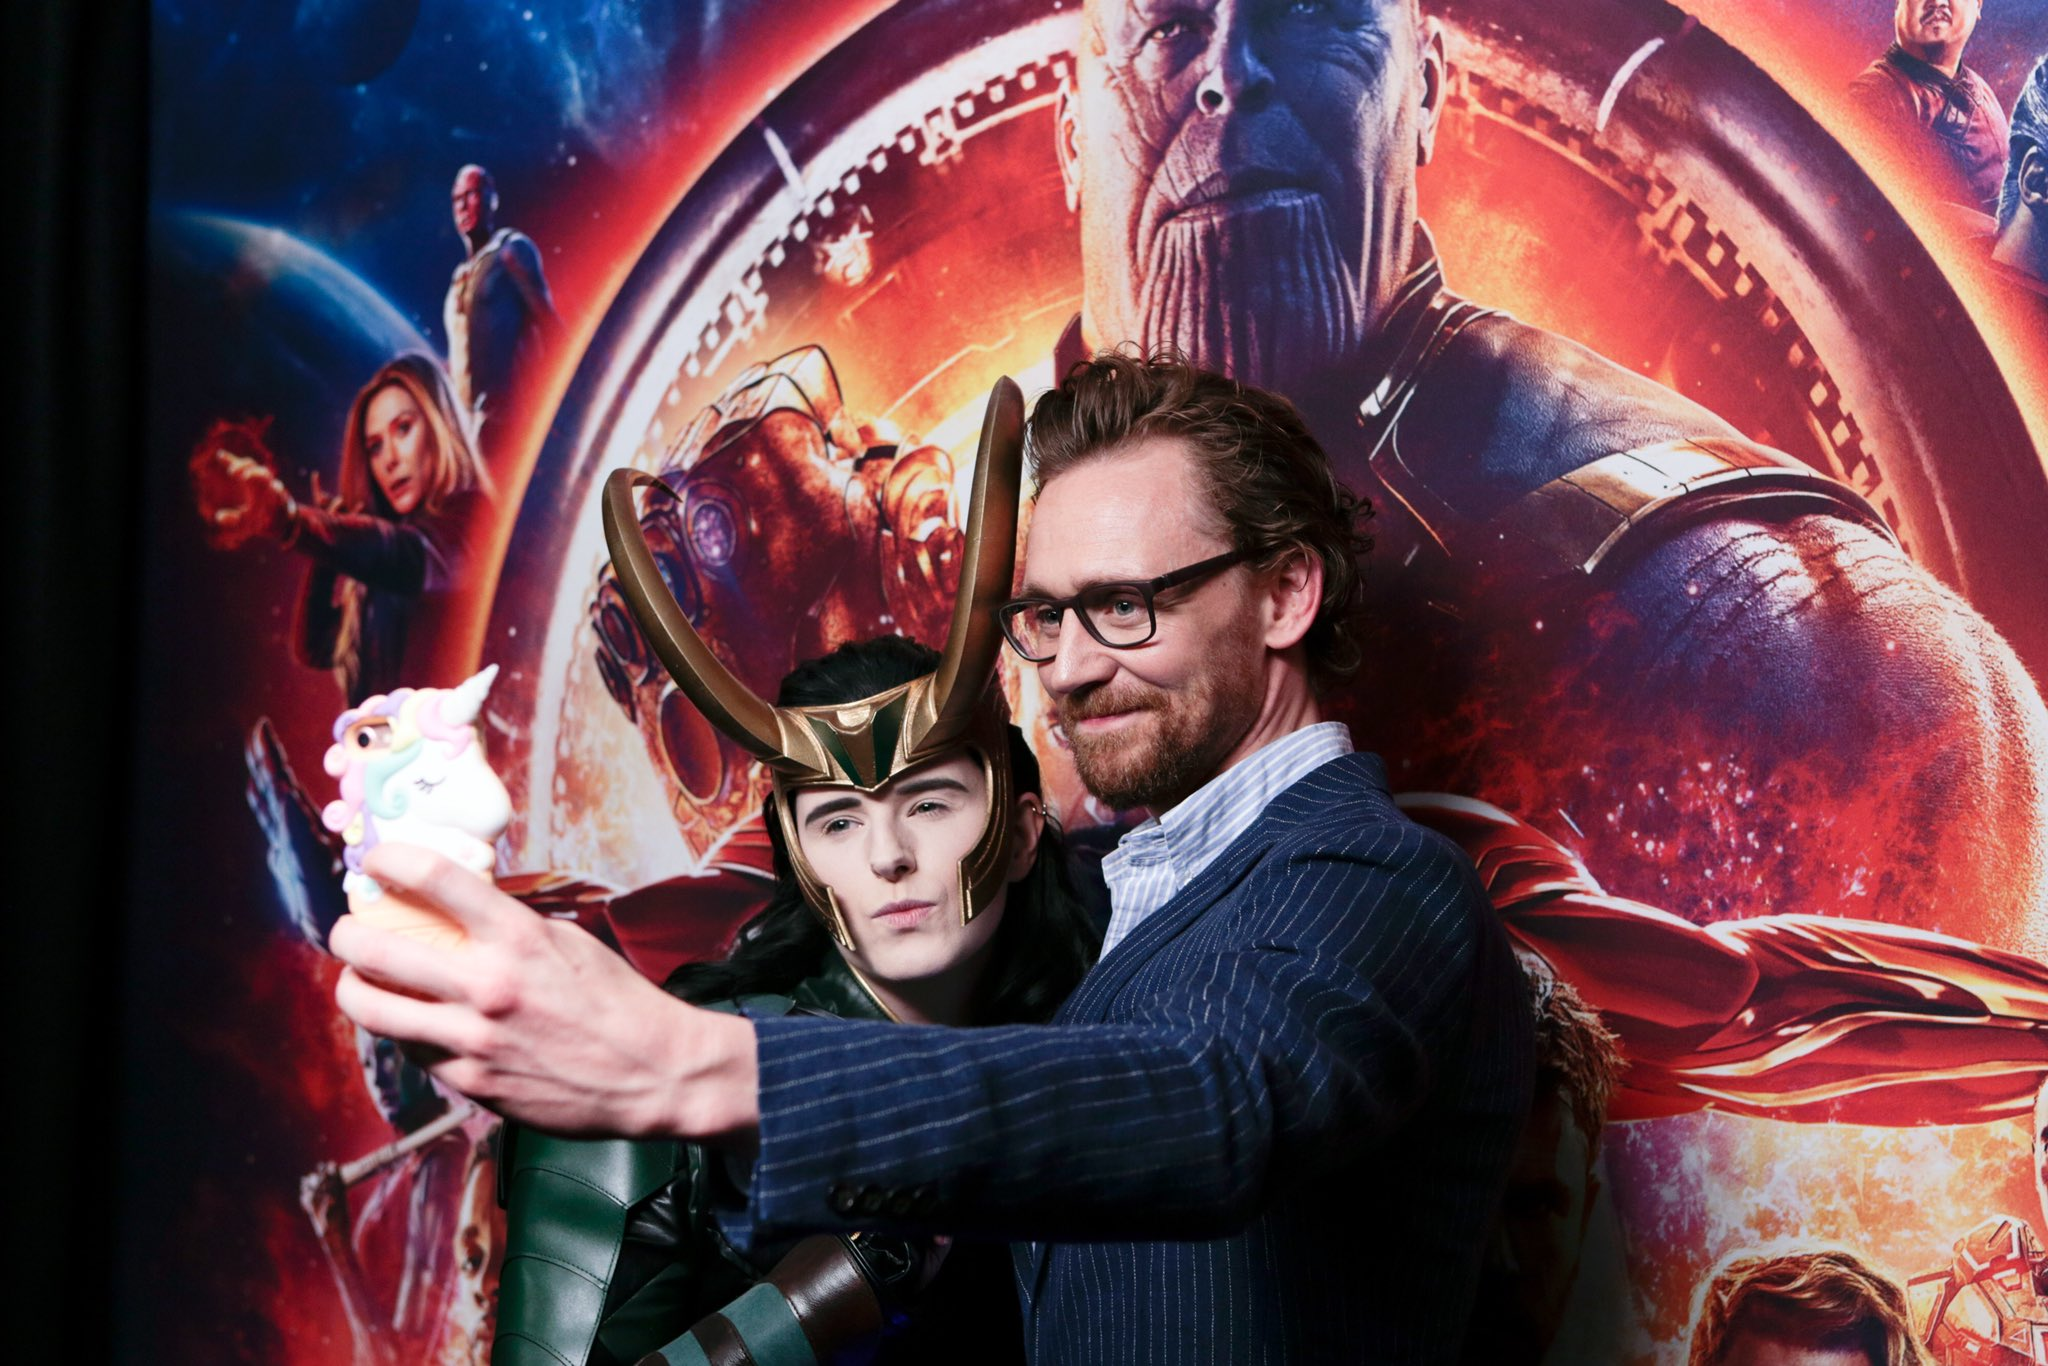 """See the photos from the Marvel Studios' """"Avengers: #InfinityWar"""" red carpet fan event in London! (2/3) https://t.co/QI9iN1mLYn"""